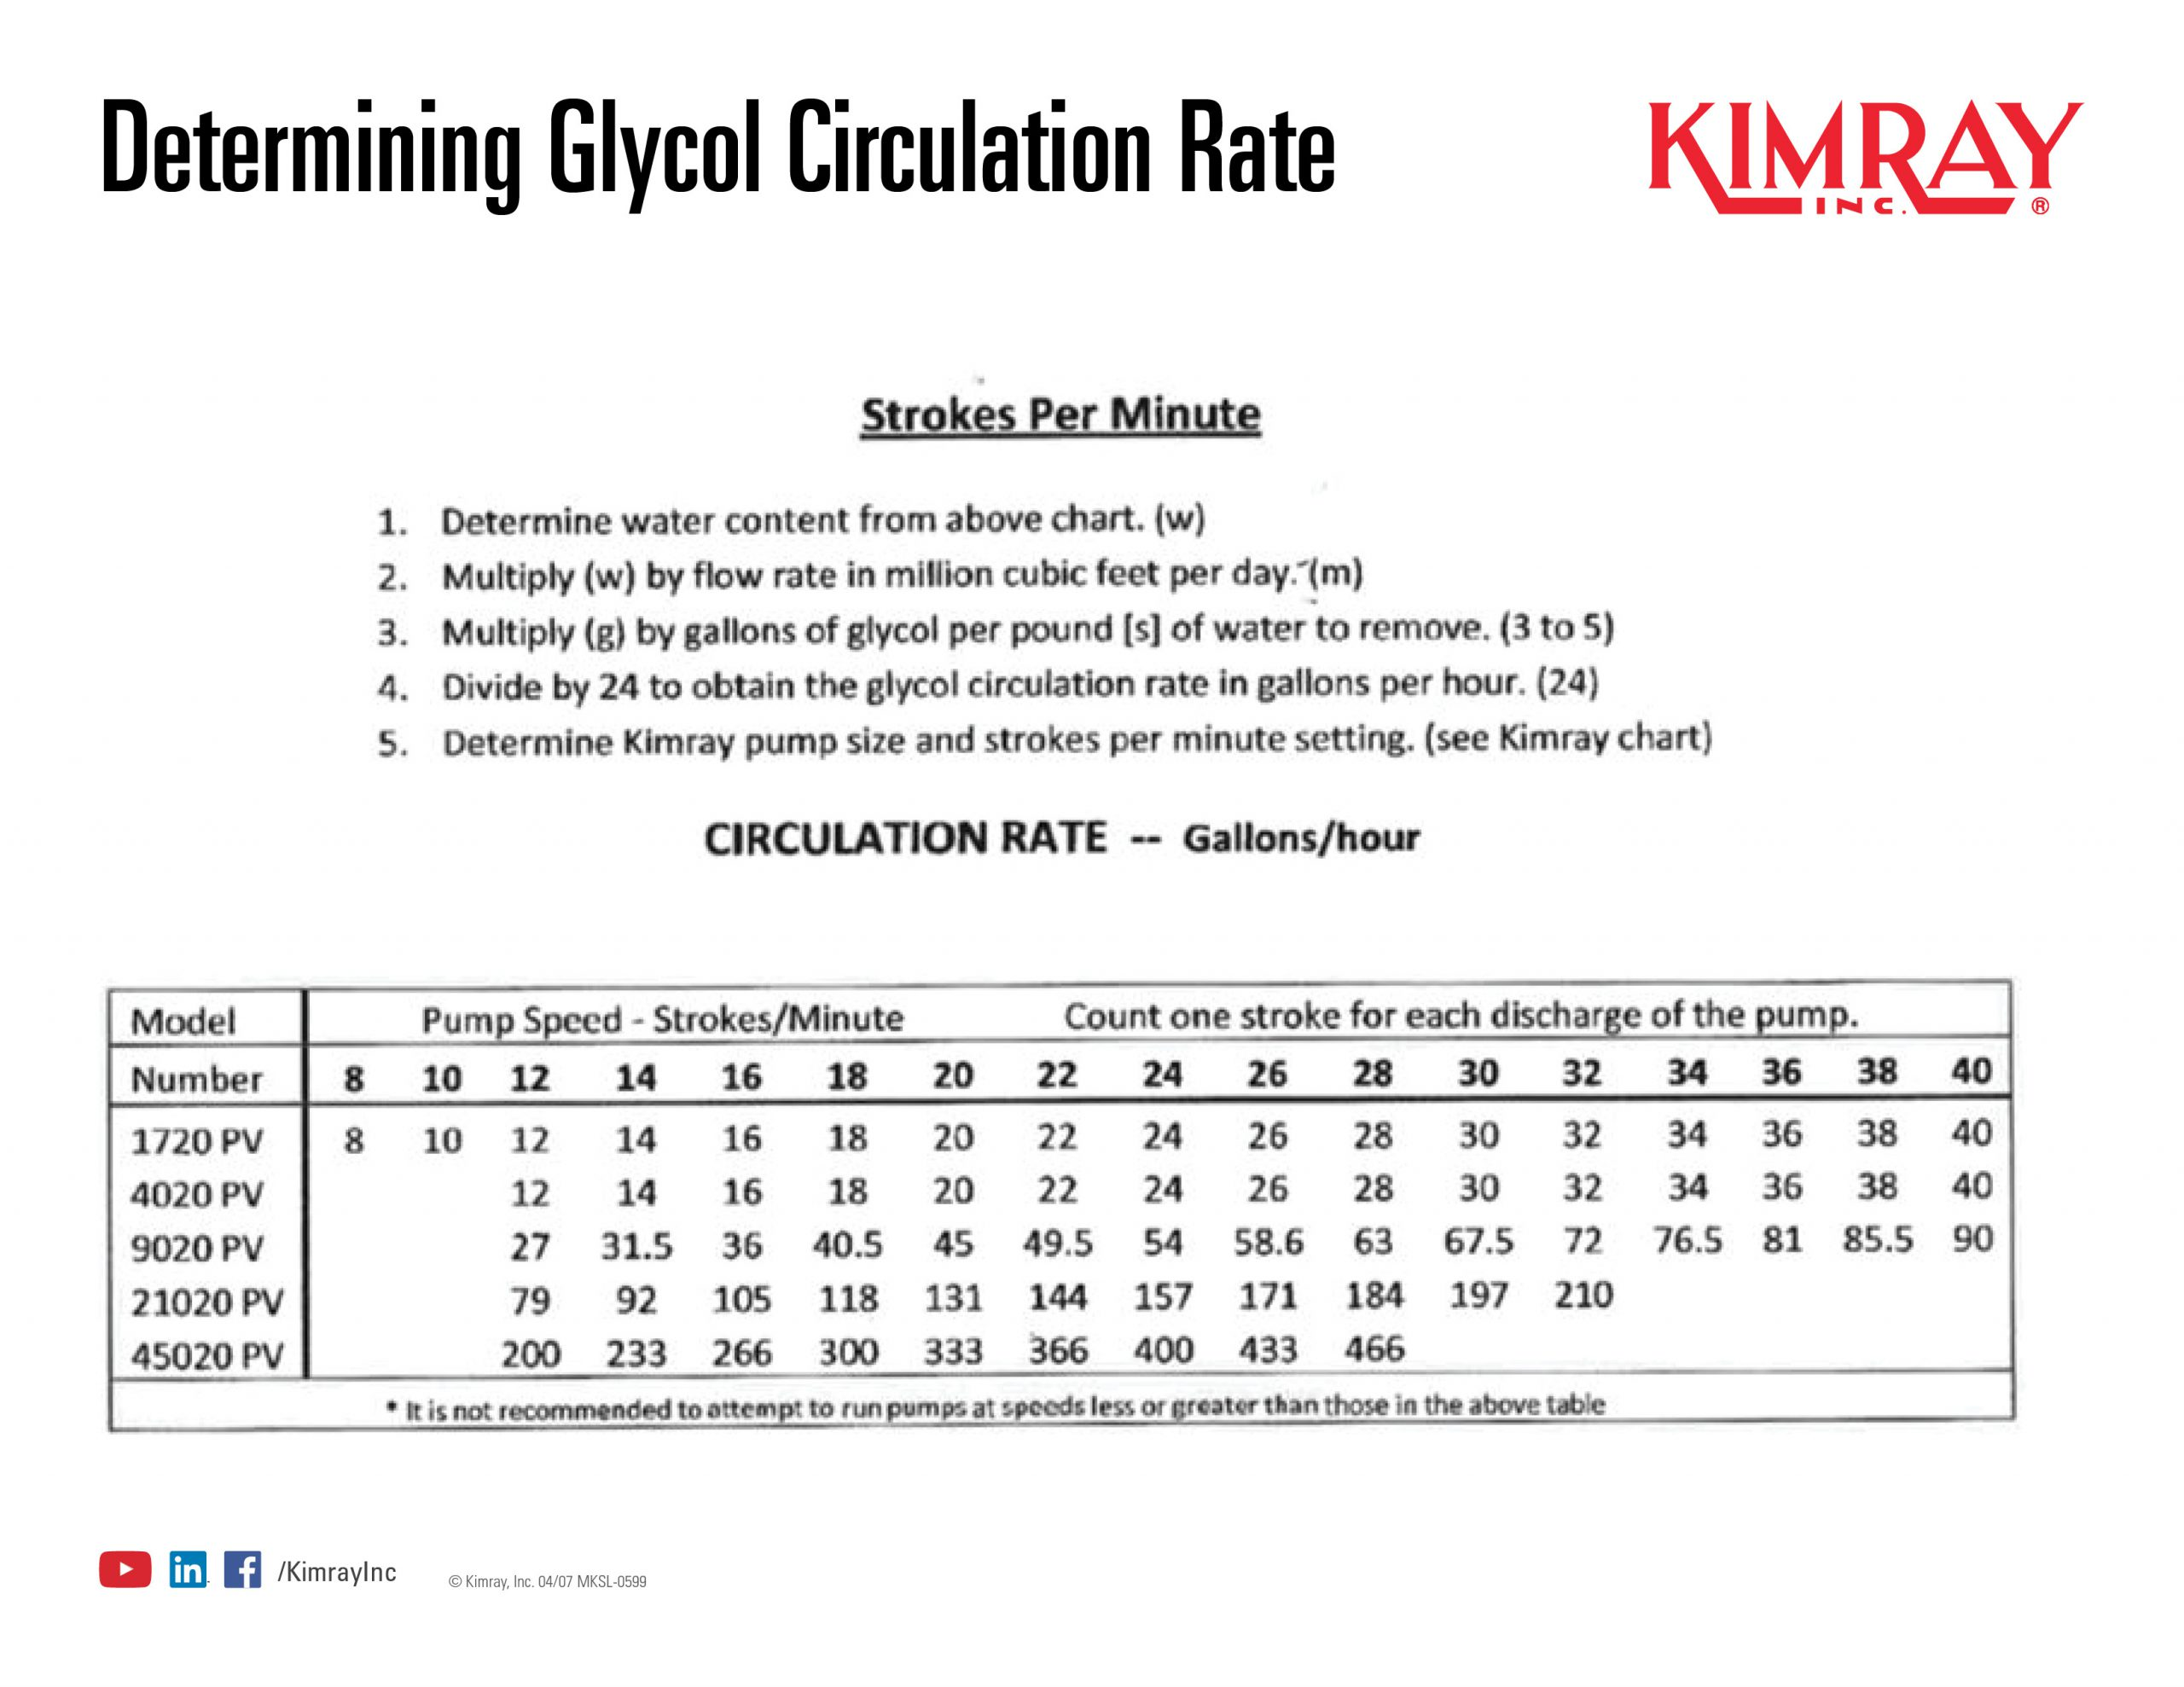 Glycol Pump Sizing and Stroke Count